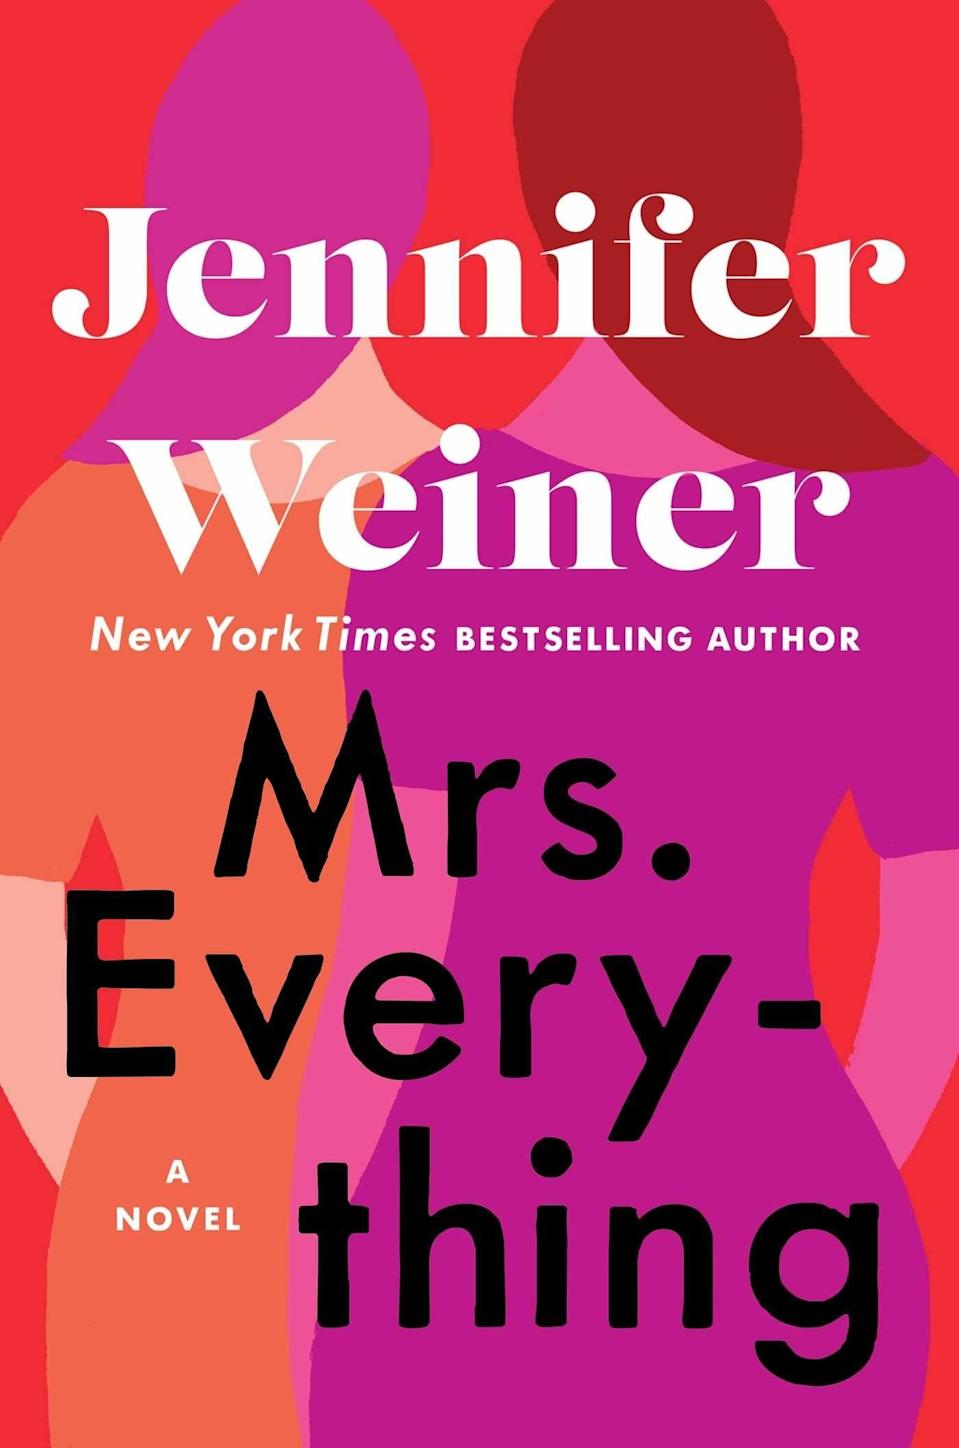 Jo. Beth. Meg. Amy. Who among us <em>didn't</em> grow up loving the characters of <em>Little Women</em>? In best-selling author Jennifer Weiner's latest novel, she takes inspiration from the adolescent classic to tell the story of Jo and Bethie Kaufman—two sisters whose lives are upended after the unexpected loss of their father. <em>Mrs. Everything</em> is a multigenerational story that deals with drug use, rape, abortion, and the ties of sisterhood. Warning: There will be tears.